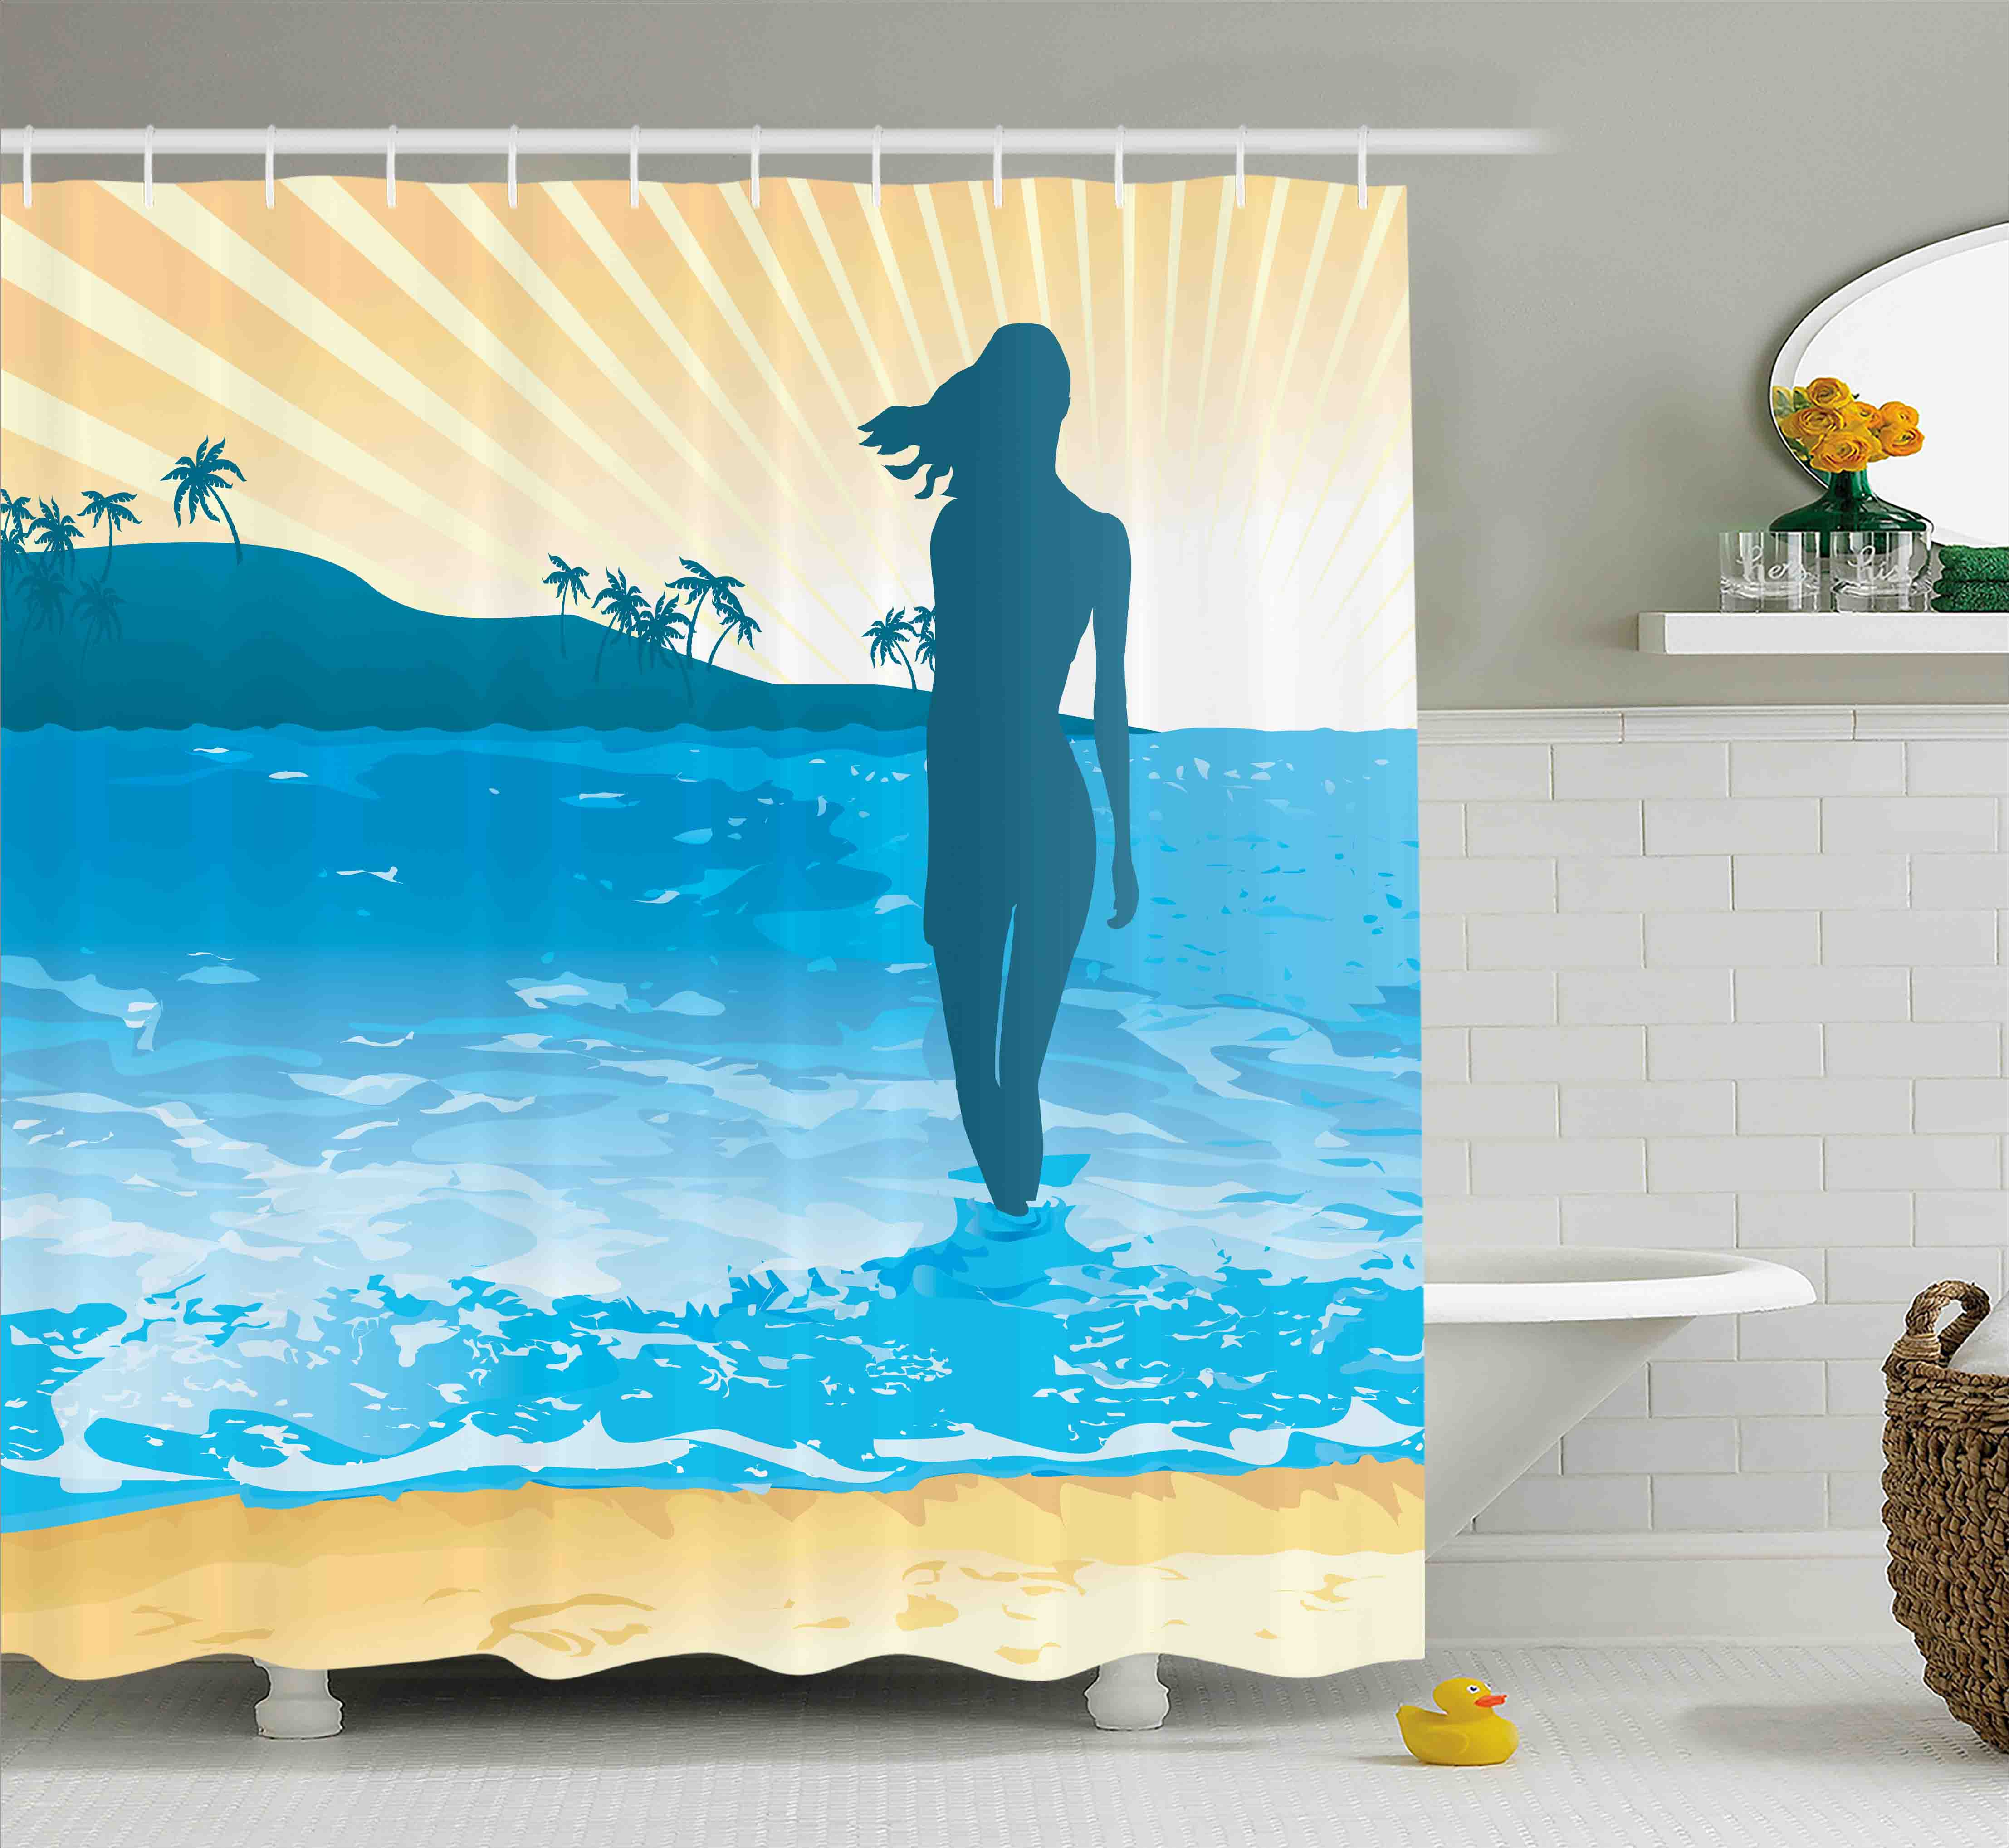 Beach Shower Curtain, Summer Vibes Girl Near the Sea Shore Ocean Palms Waves Sunny Art Print, Fabric Bathroom Set with Hooks, 69W X 75L Inches Long, Sky Blue Cream Slate Blue, by Ambesonne